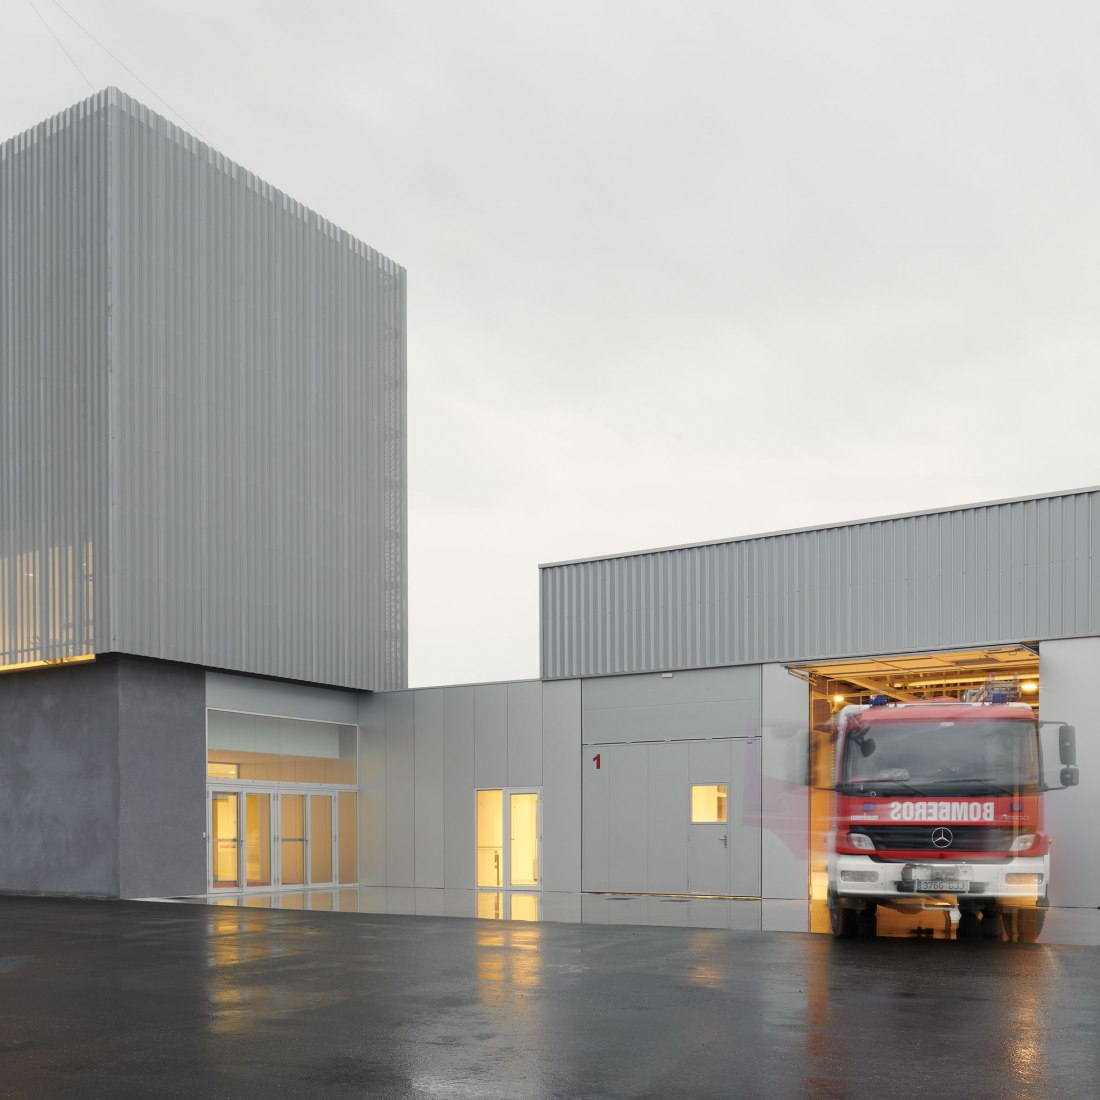 Fire Station nº 4 by IDOM. Photograph by Iñaki Bergera